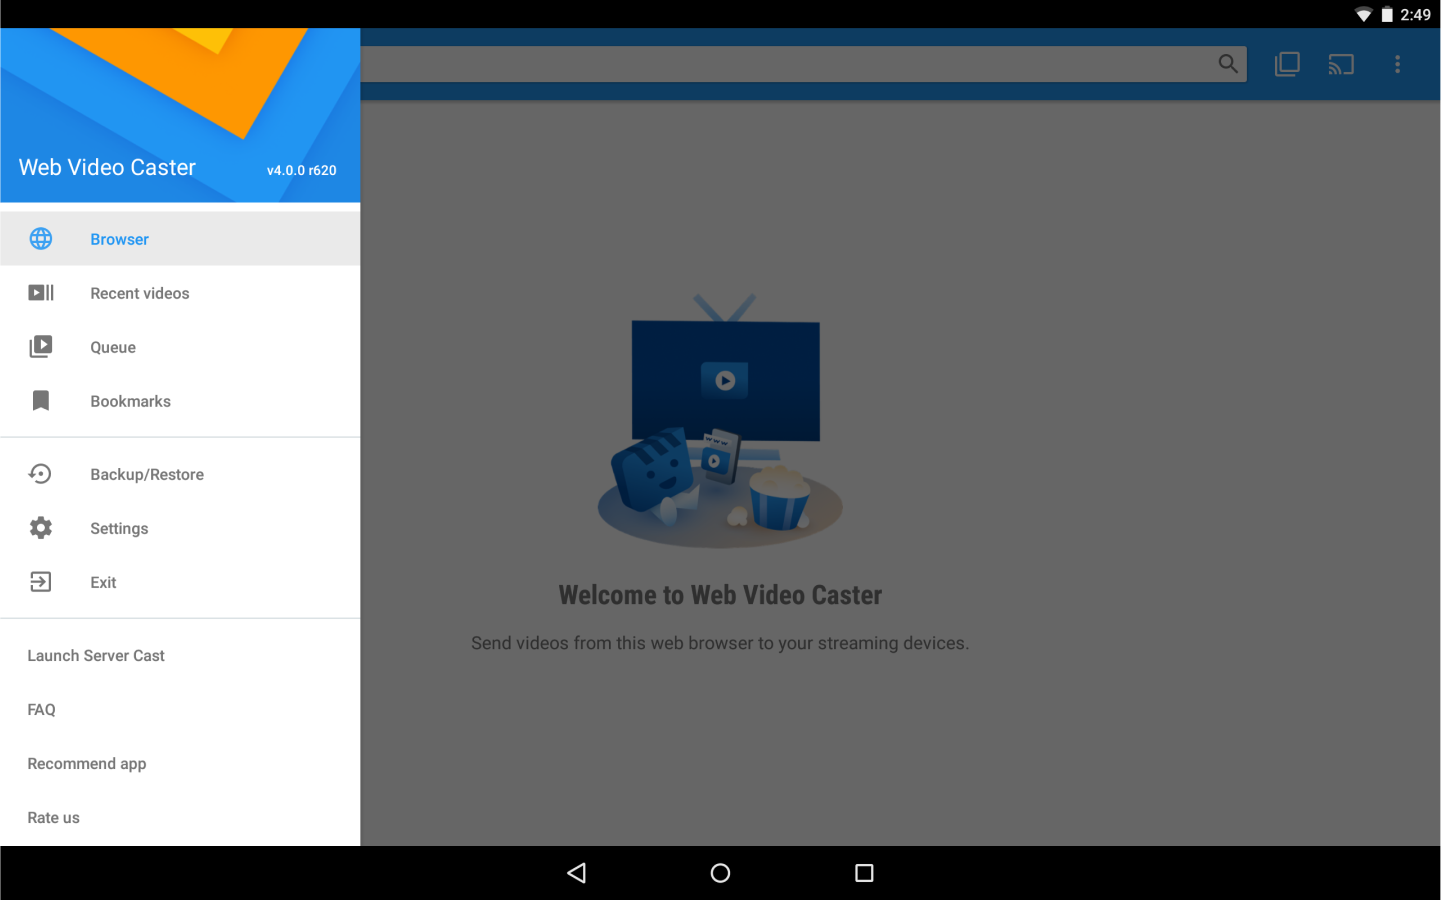 Web Video Cast | Browser to TV (Chromecast/DLNA/+) – Capture d'écran